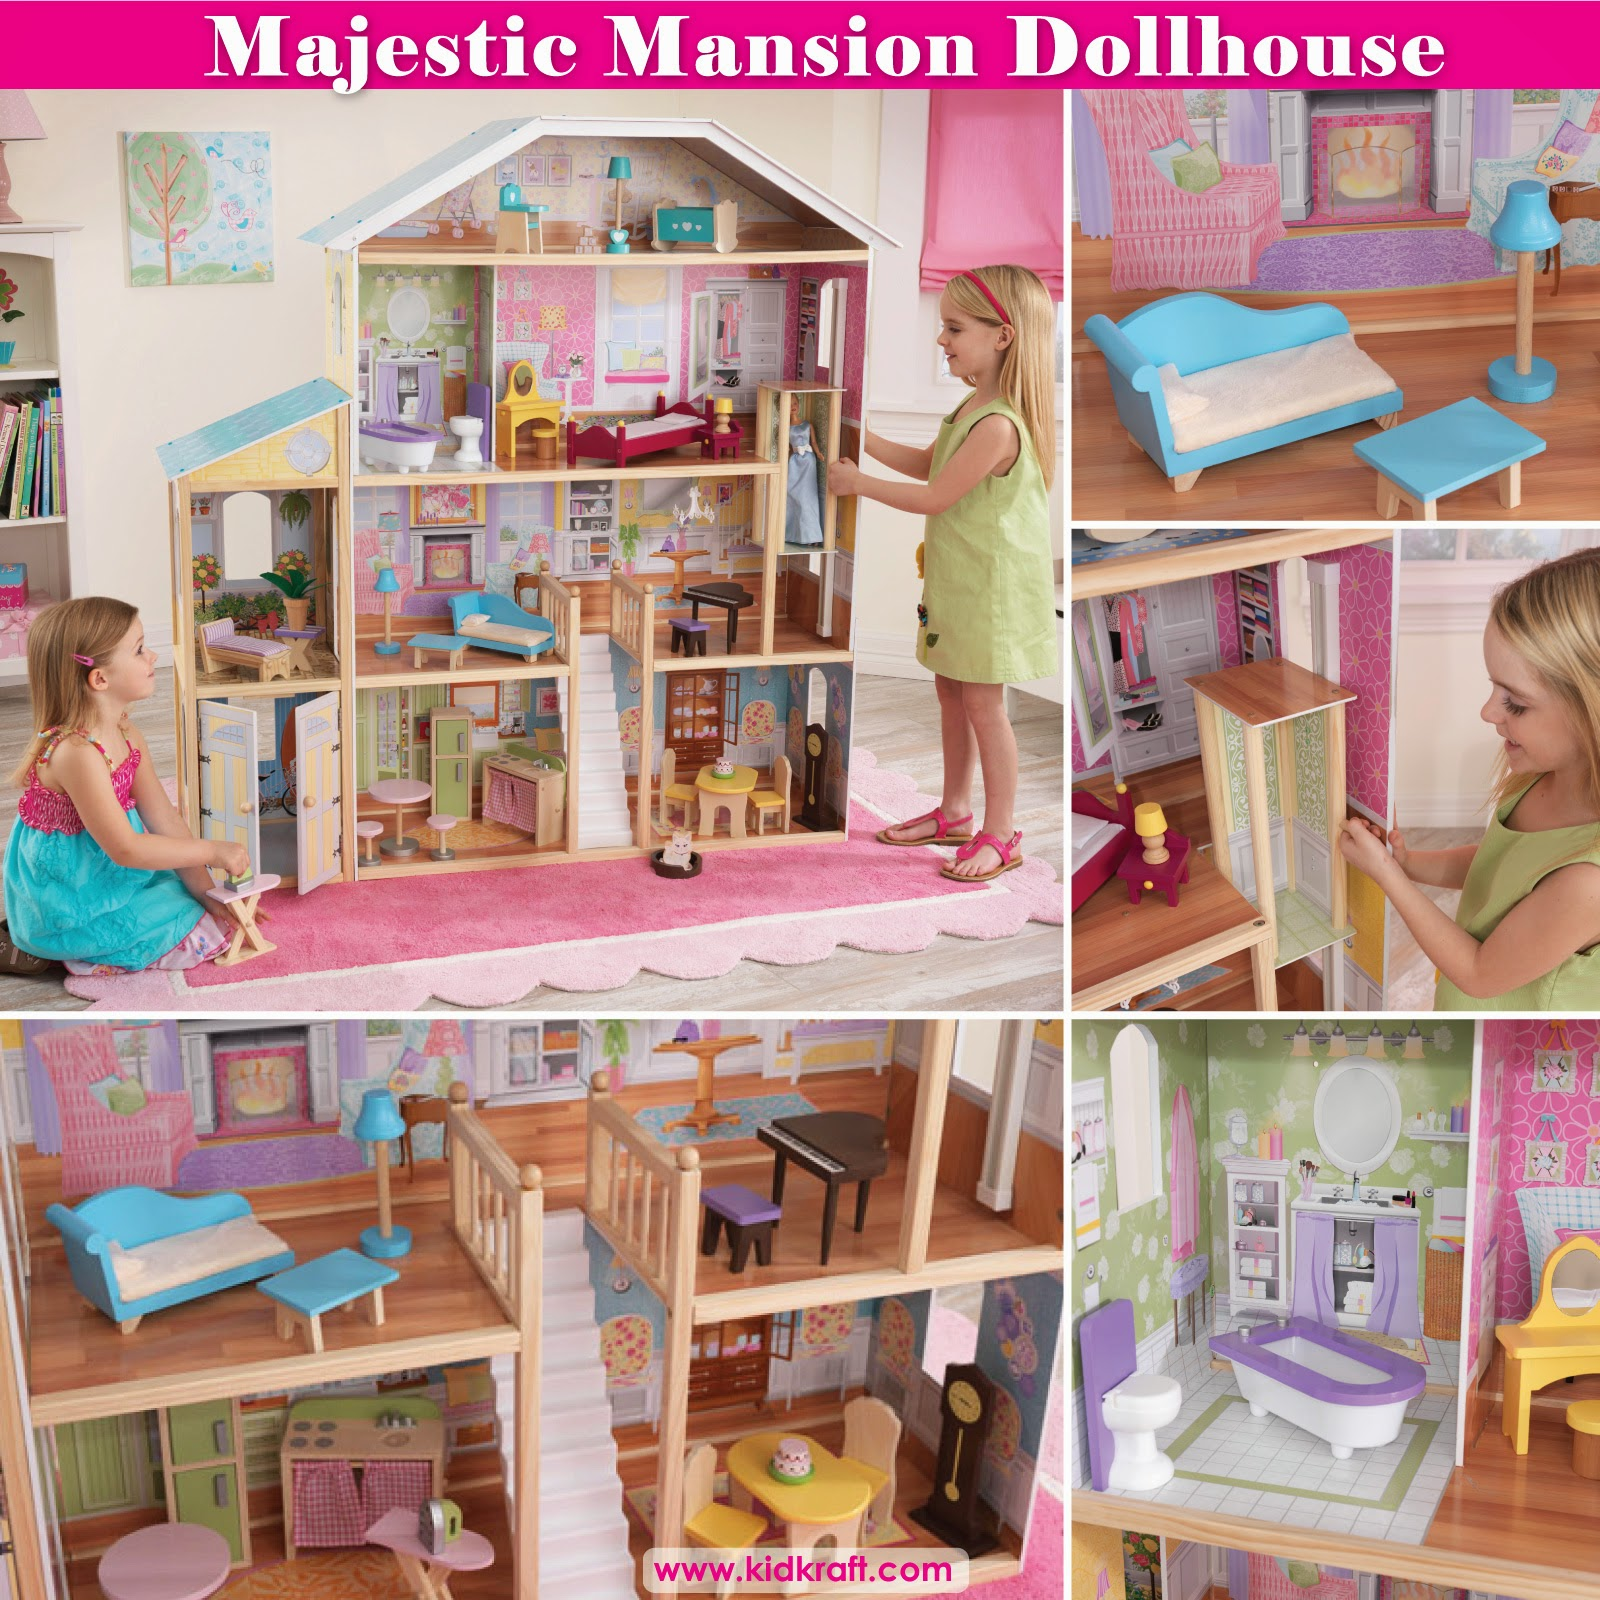 lovely kidkraft majestic mansion dollhouse 65252 made of wood for kids play room furniture ideas